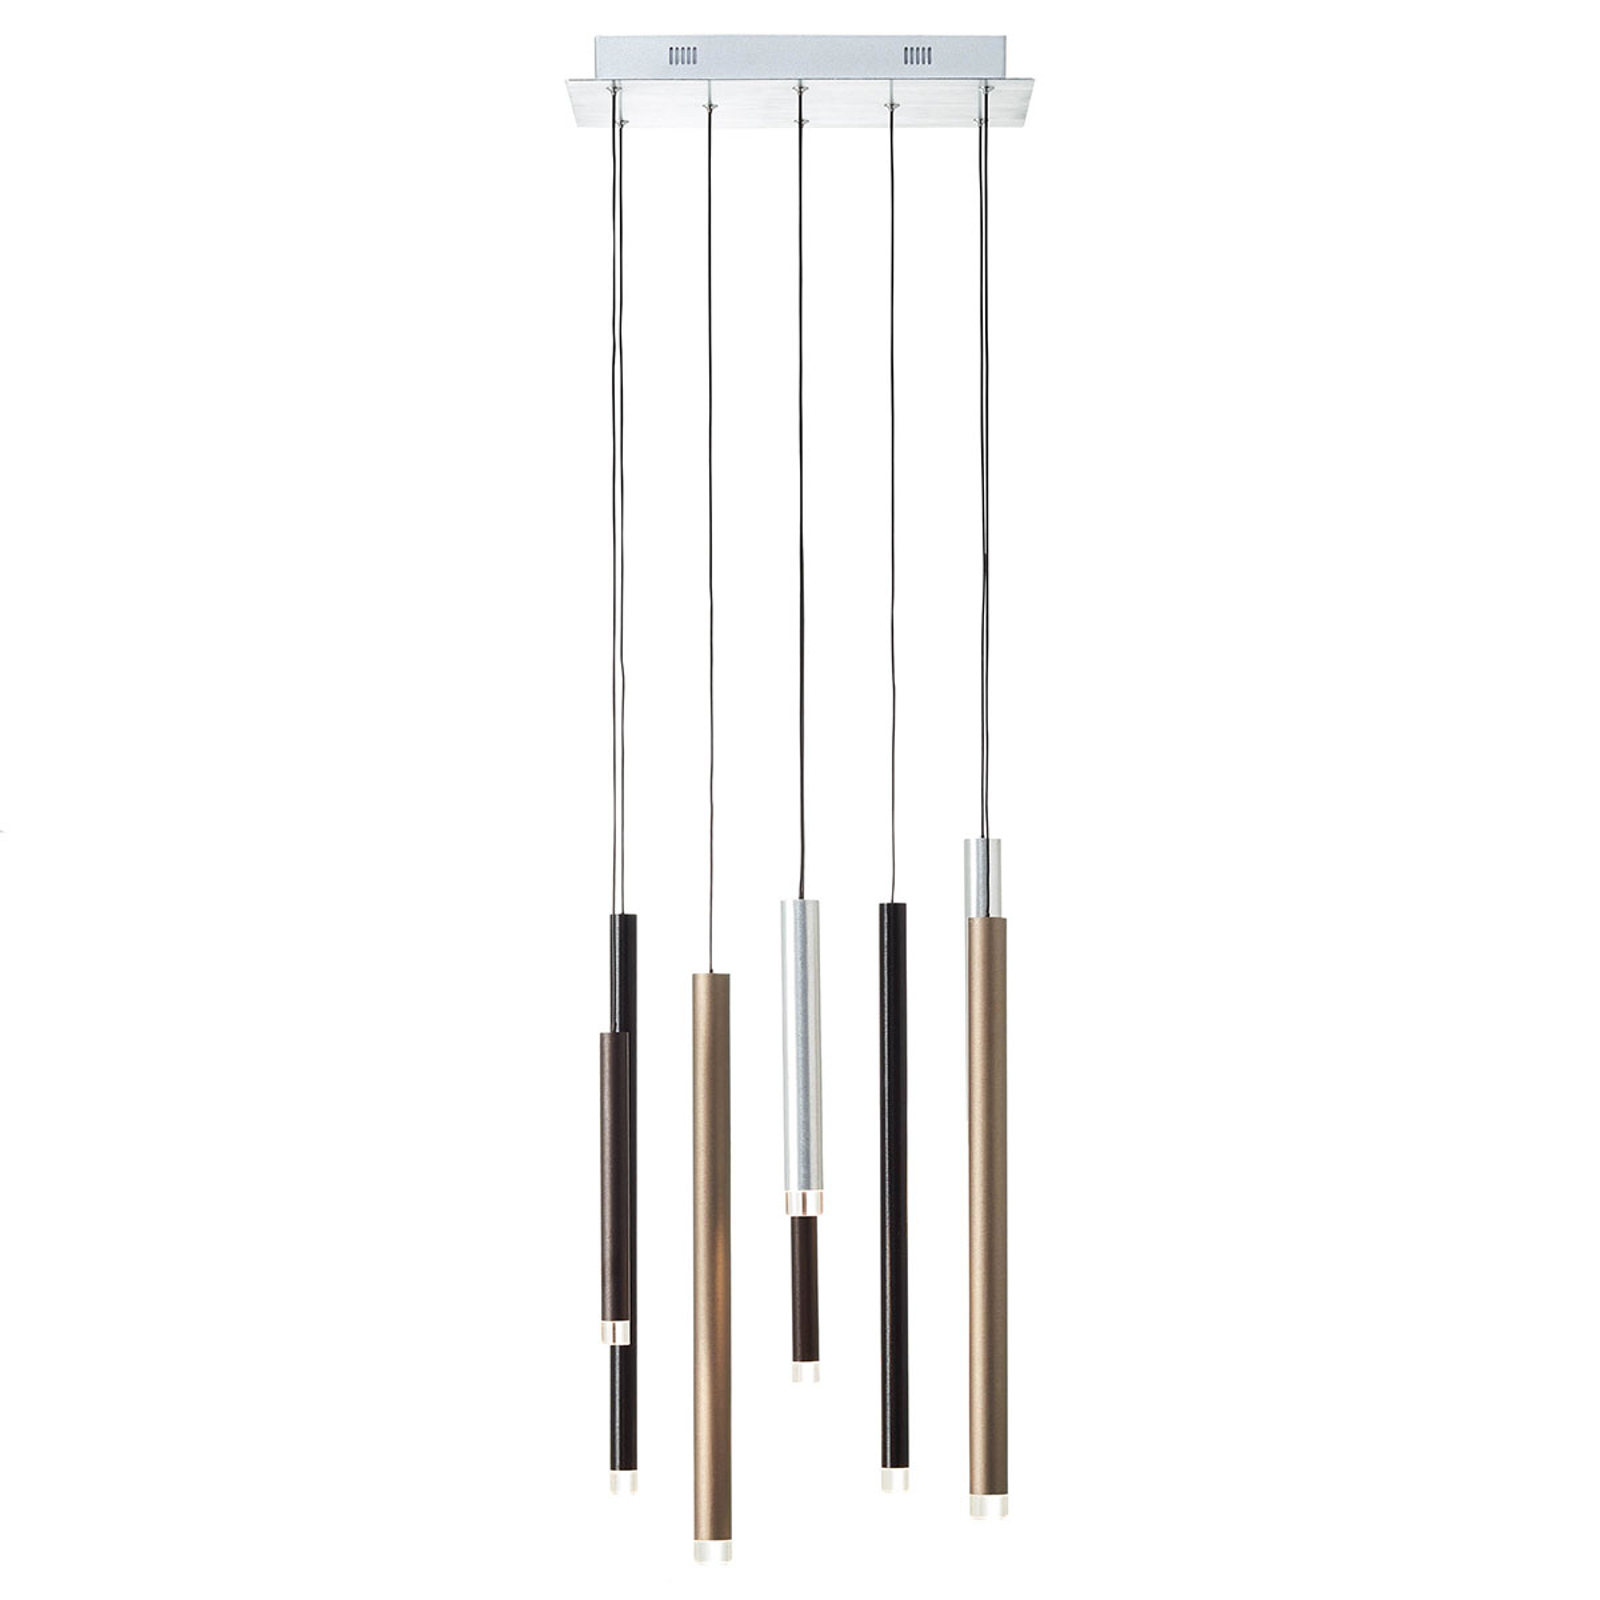 Suspension LED Cembalo dimmable à 8 lampes